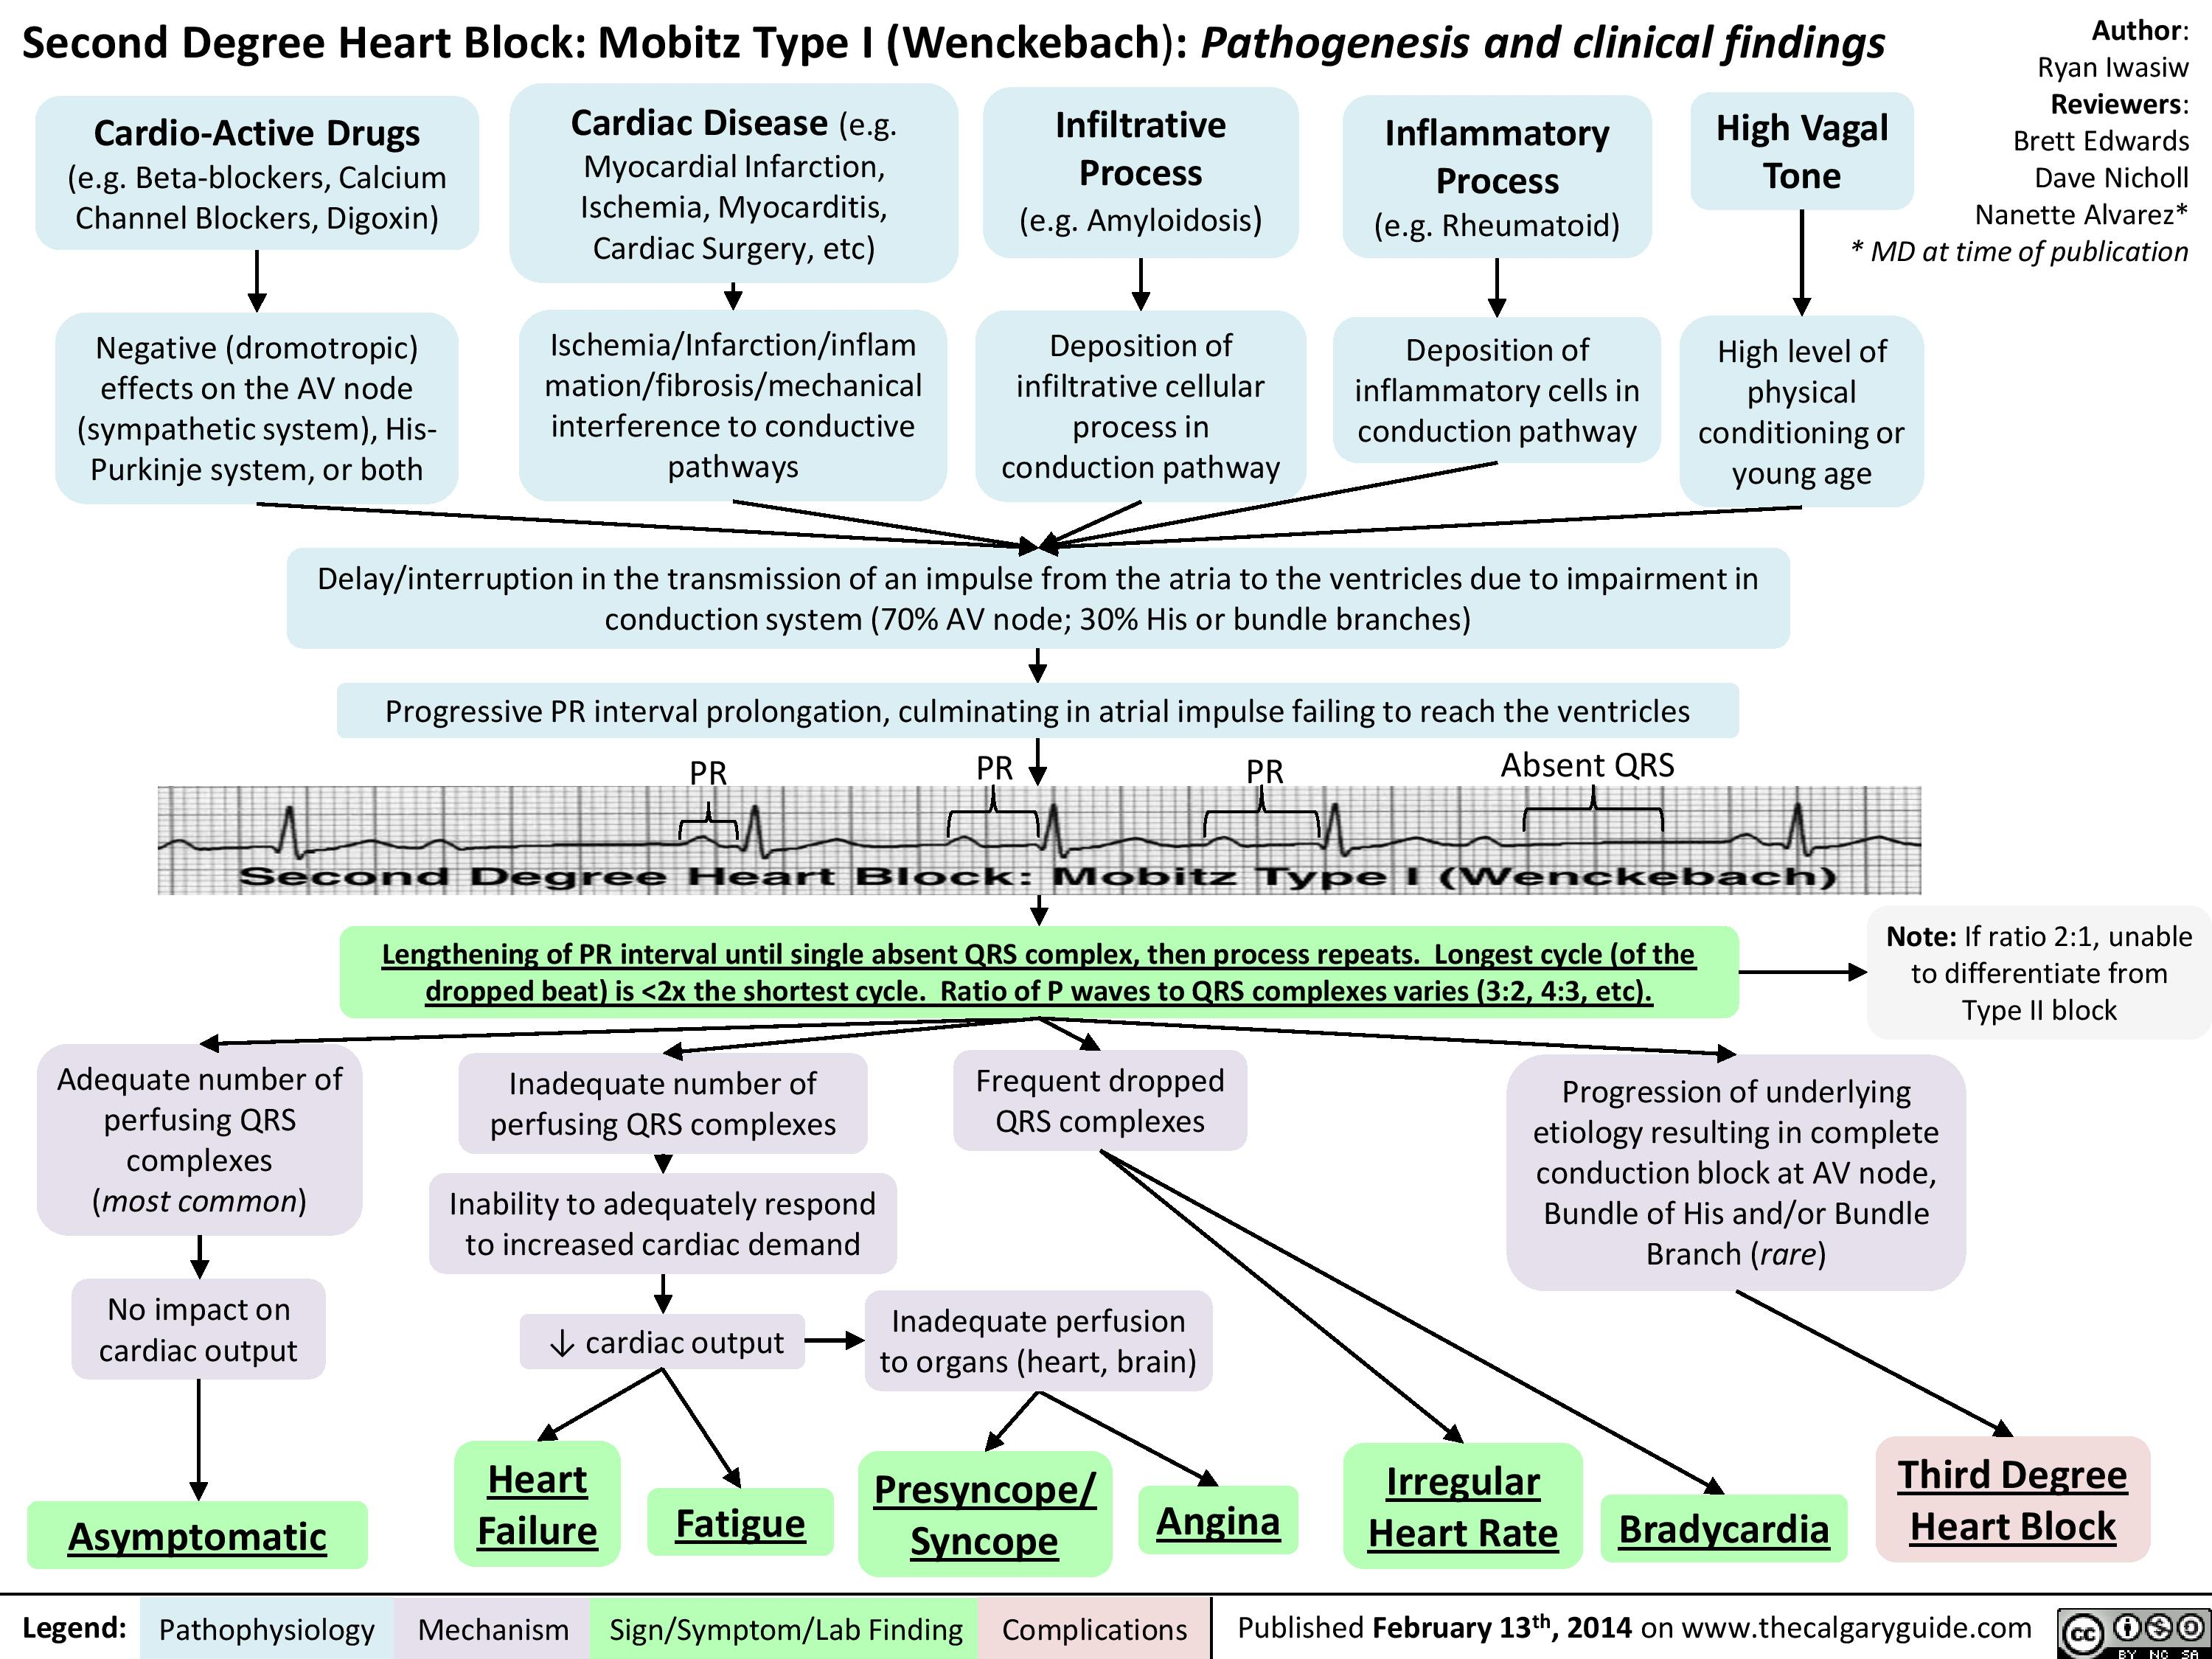 Second Degree Heart Block - Mobitz Type I (Wenckebach) -      Pathogenesis and Clinical Findings